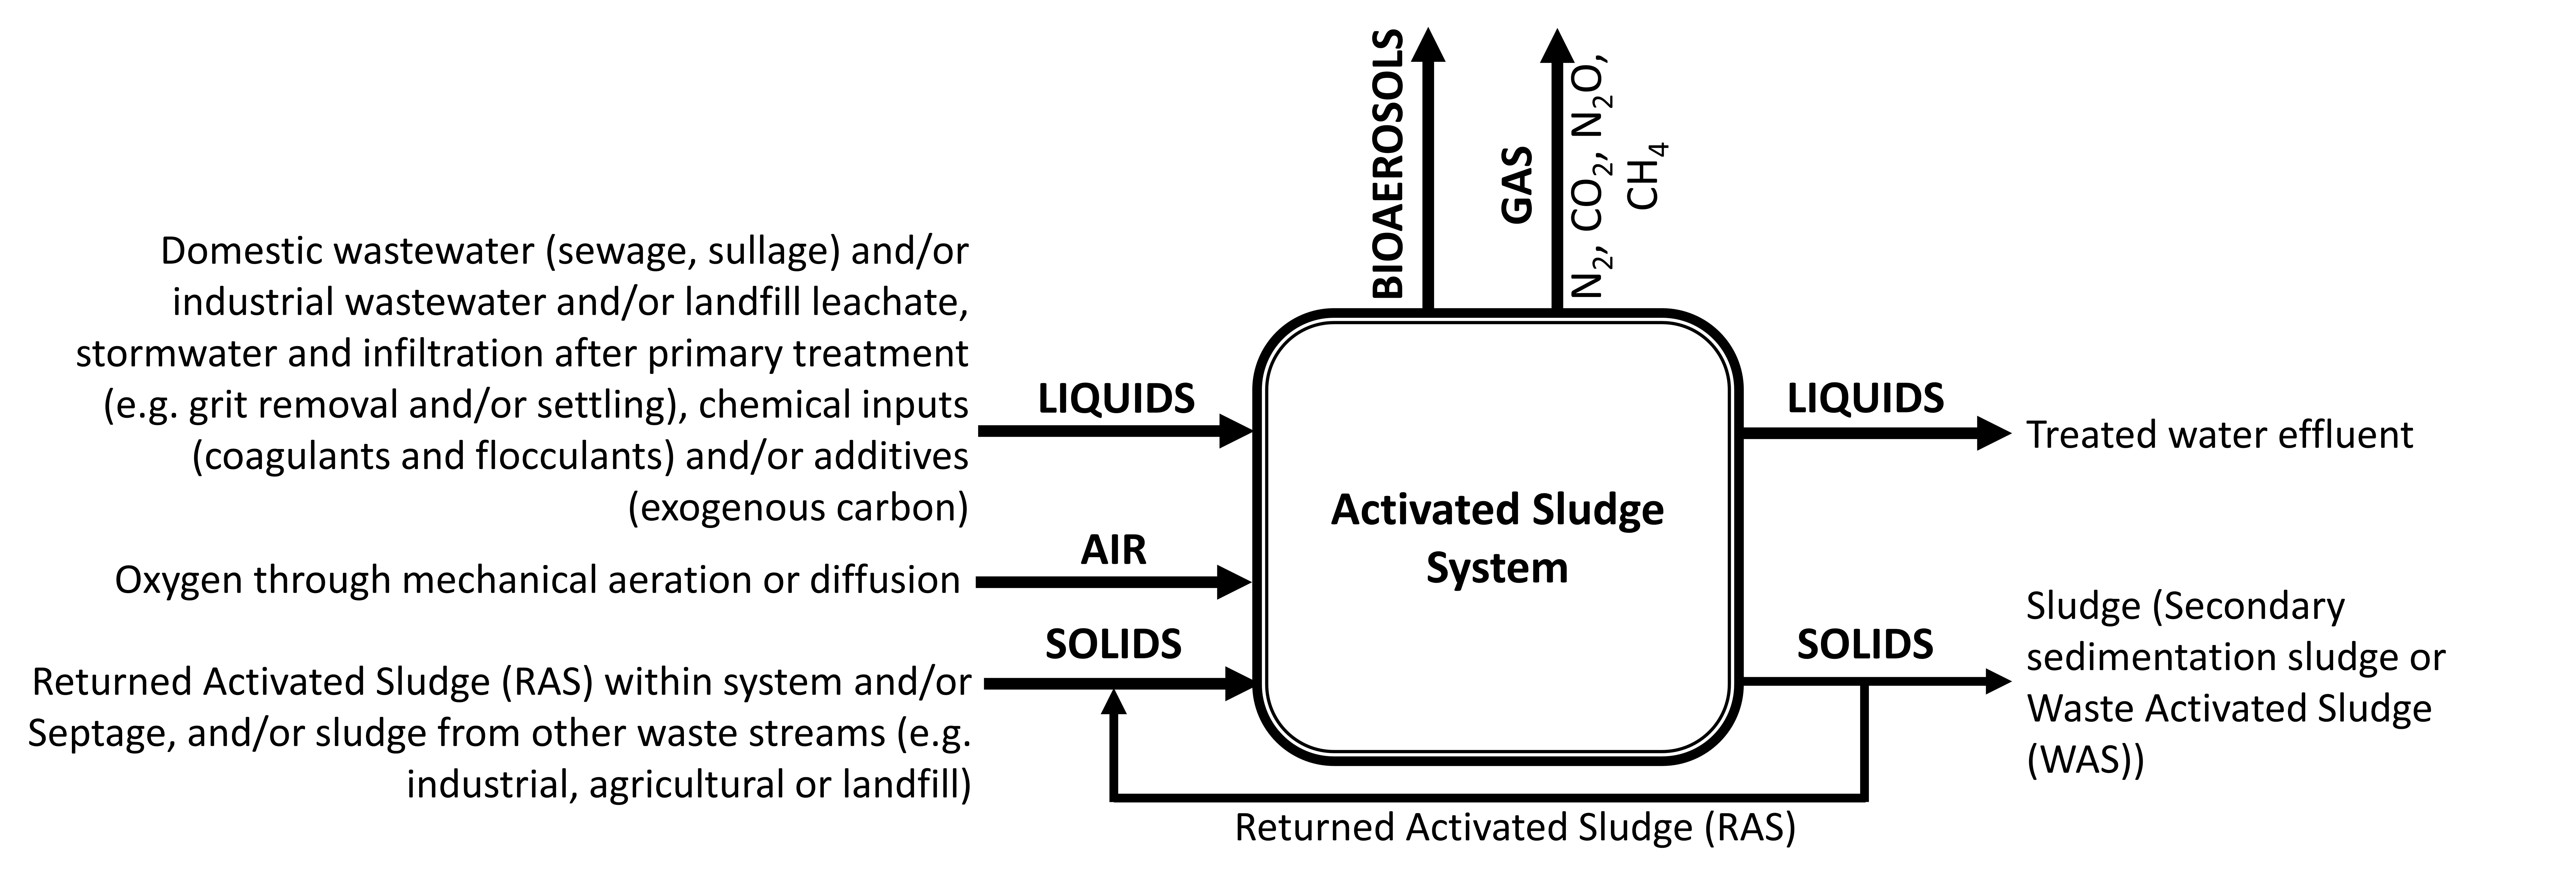 Activated Sludge Global Water Pathogen Project Process Flow Diagram Wwtp 30 Factors Affecting Pathogens In Systems